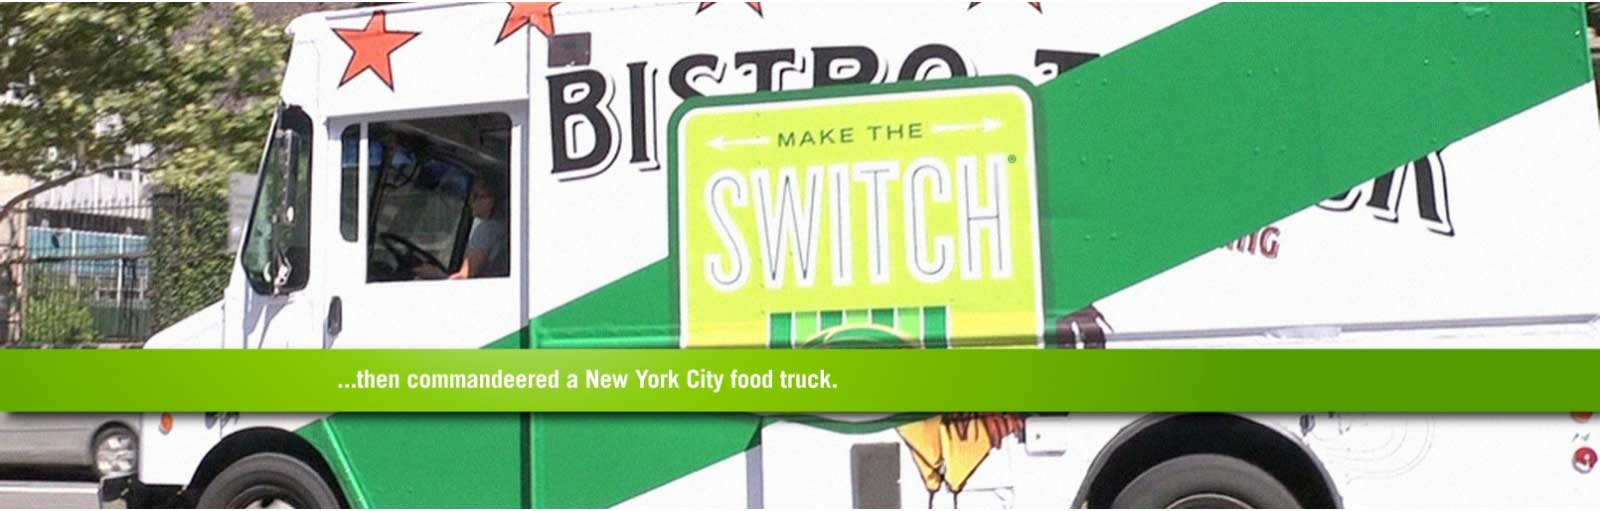 ...then commandeered a New York food truck.